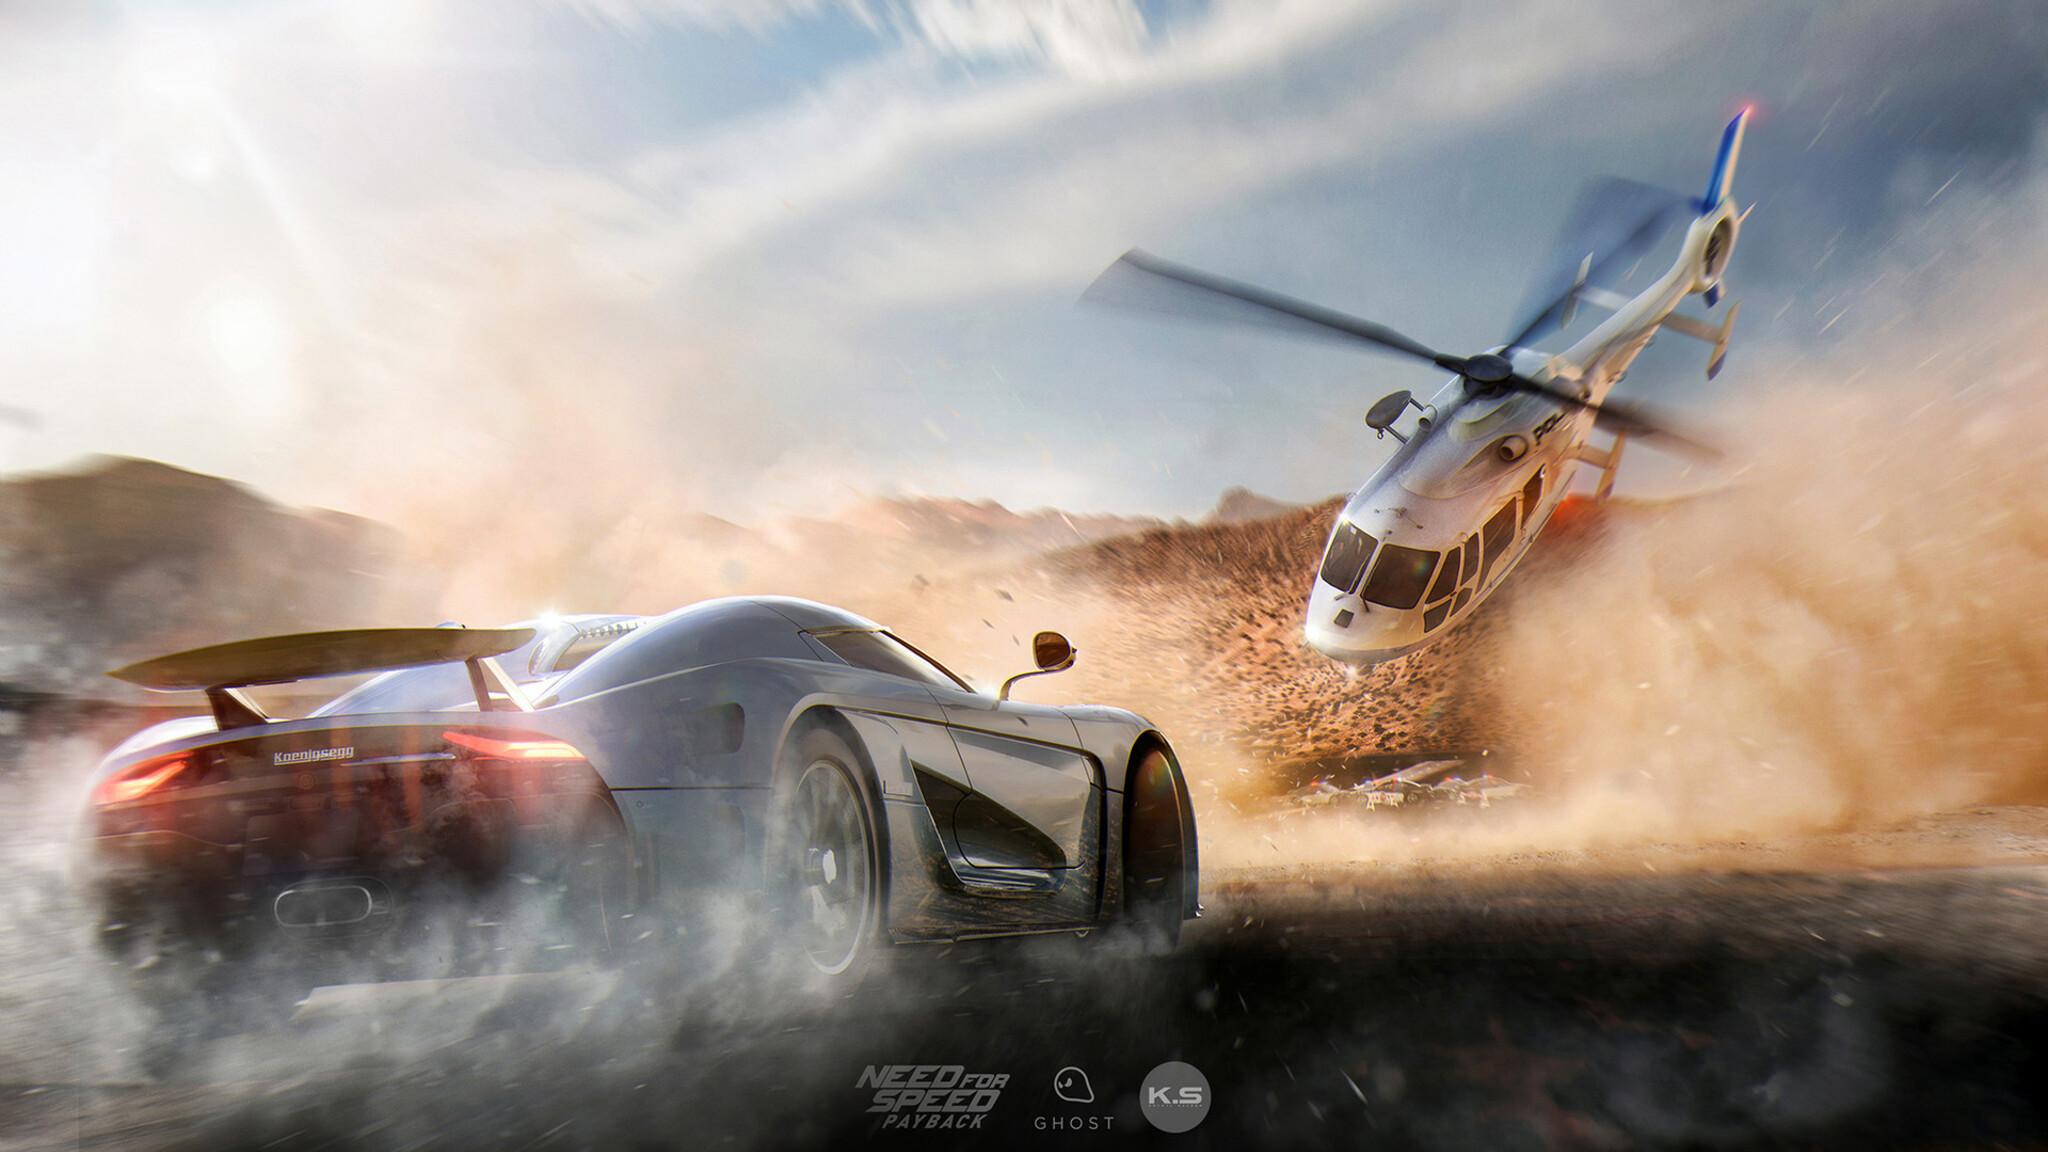 Need For Speed Payback Wallpaper: 2048x1152 NFS Payback Koenigsegg 2048x1152 Resolution HD